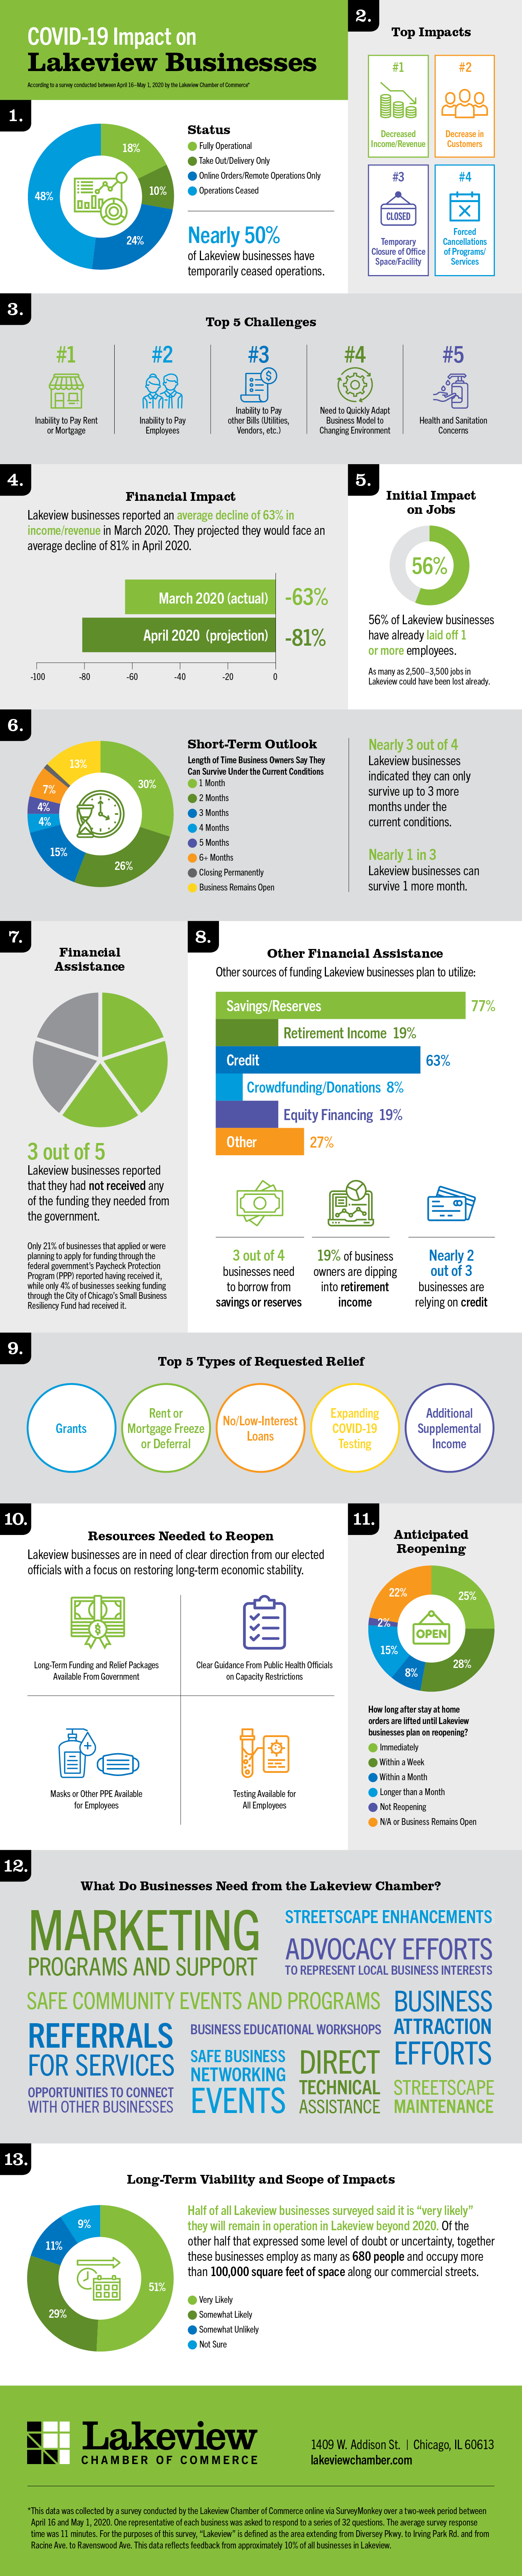 LakeviewChamber_Covid19Impact_Infographic_2.png